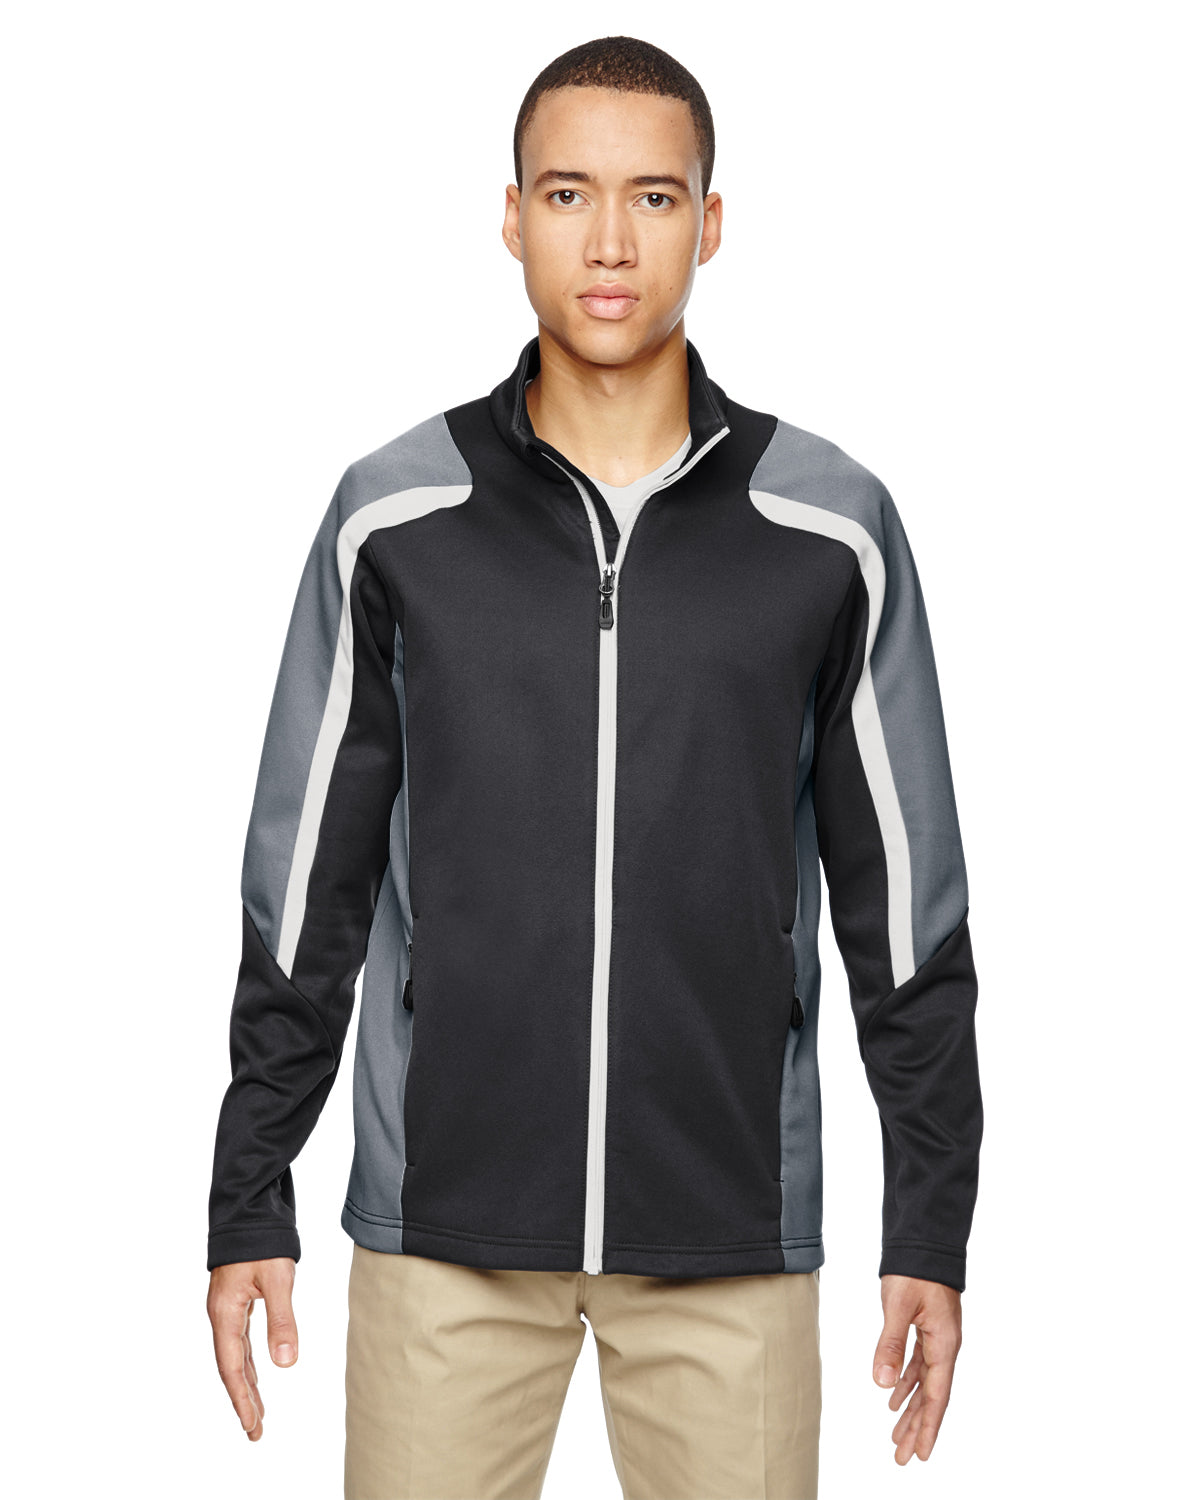 NORTH END MEN'S STRIKE COLOR BLOCK FLEECE JACKET